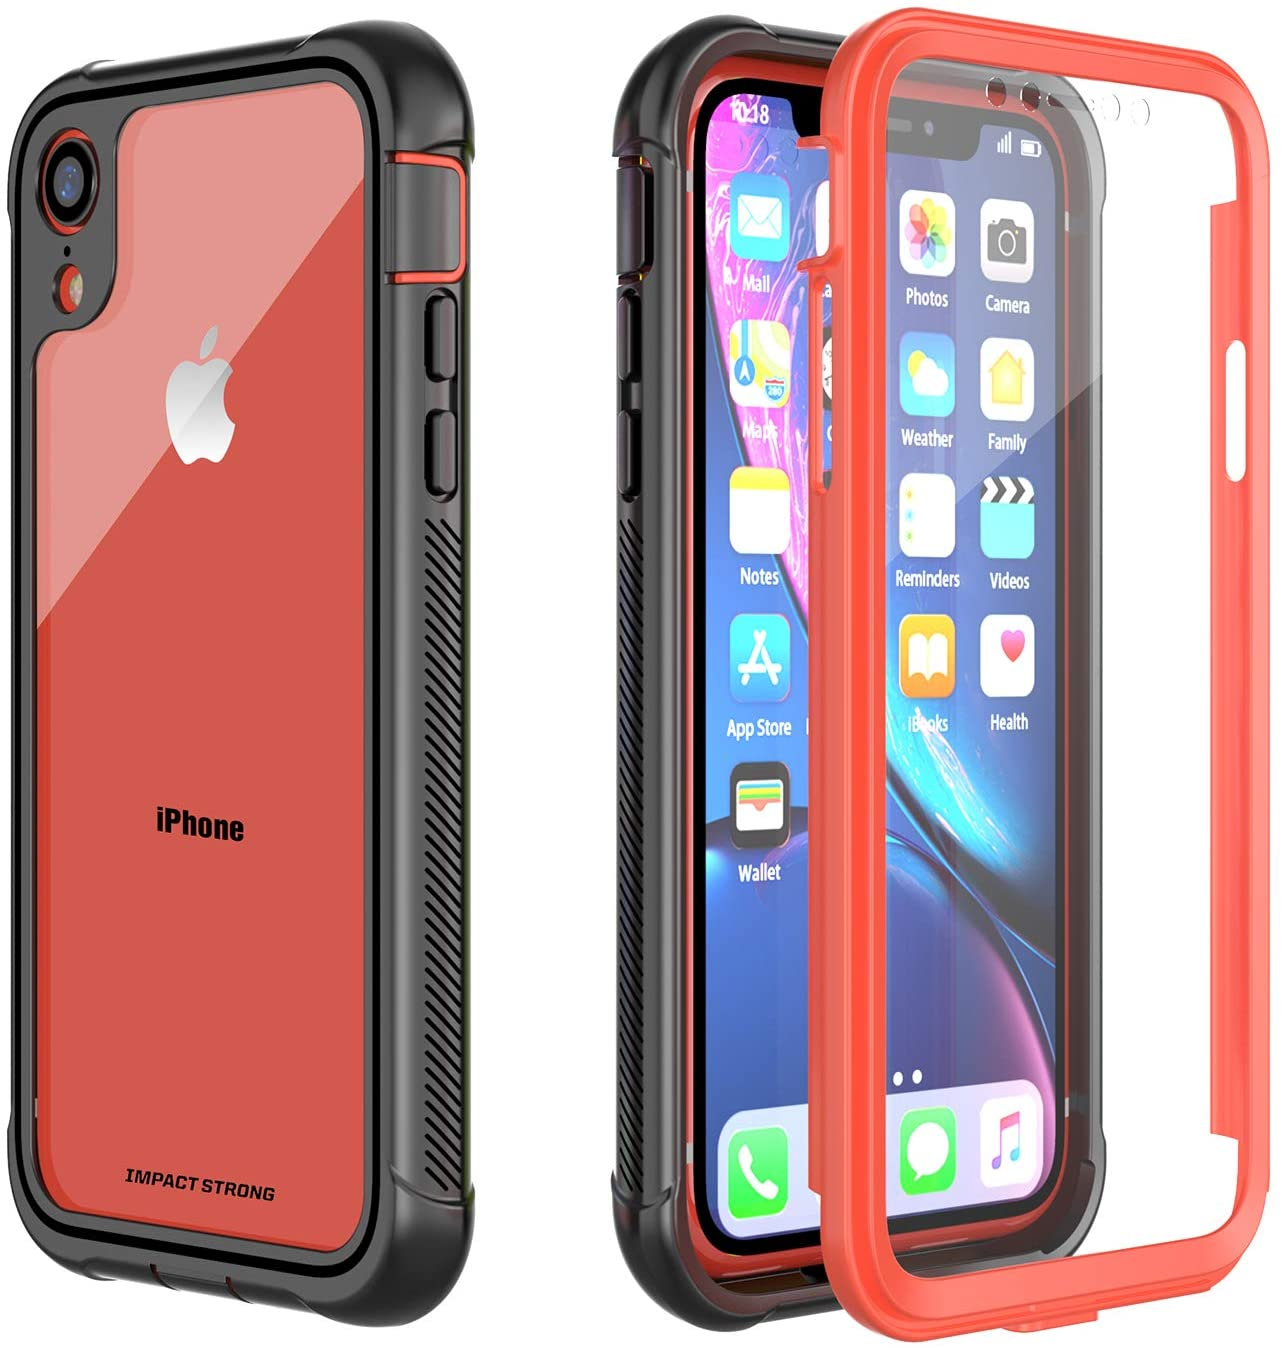 ImpactStrong iPhone XR Clear Case, Ultra Protective Case with Built-in Clear Screen Protector Clear Transparent Full Body Cover for iPhone XR 2018 6.1 inch (Coral)